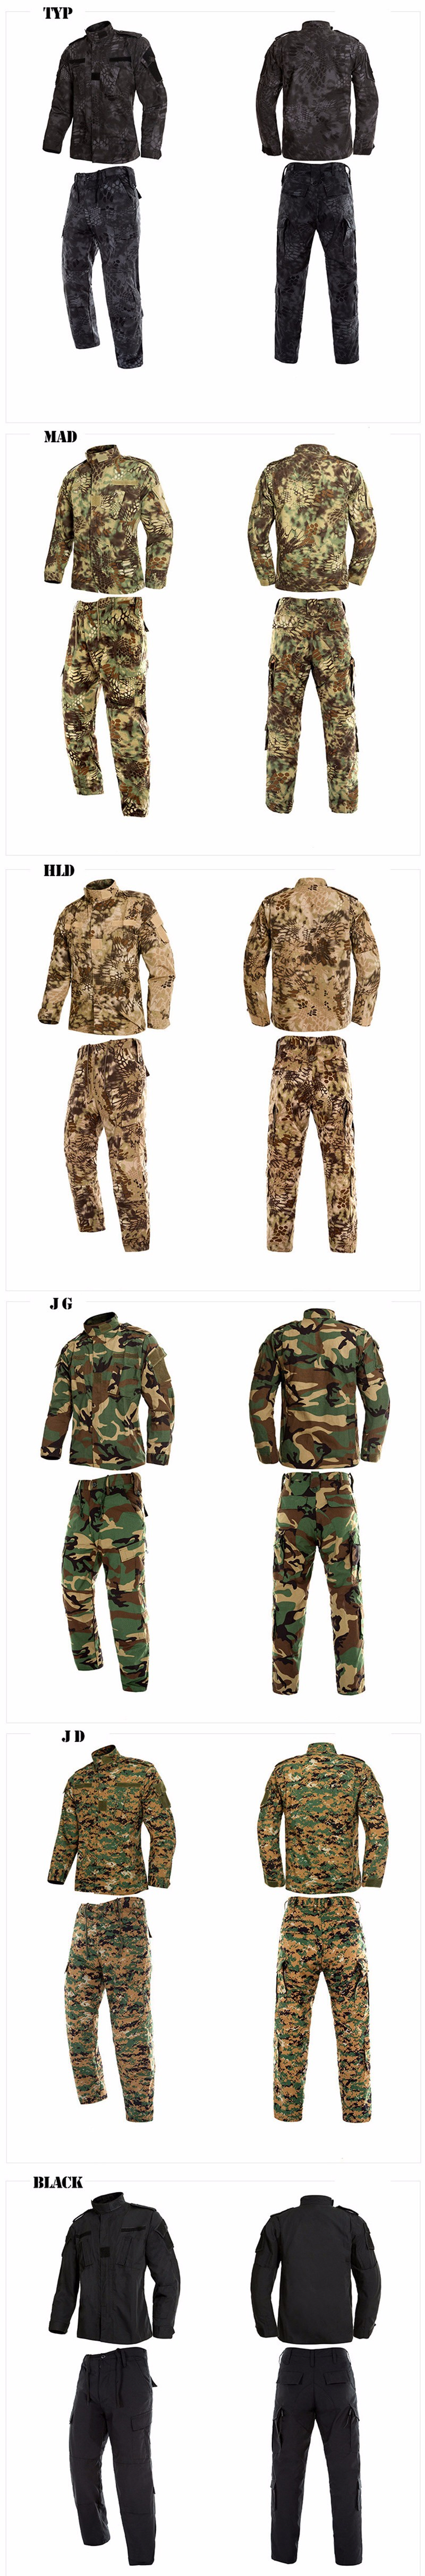 Tactical Military Camouflage suit